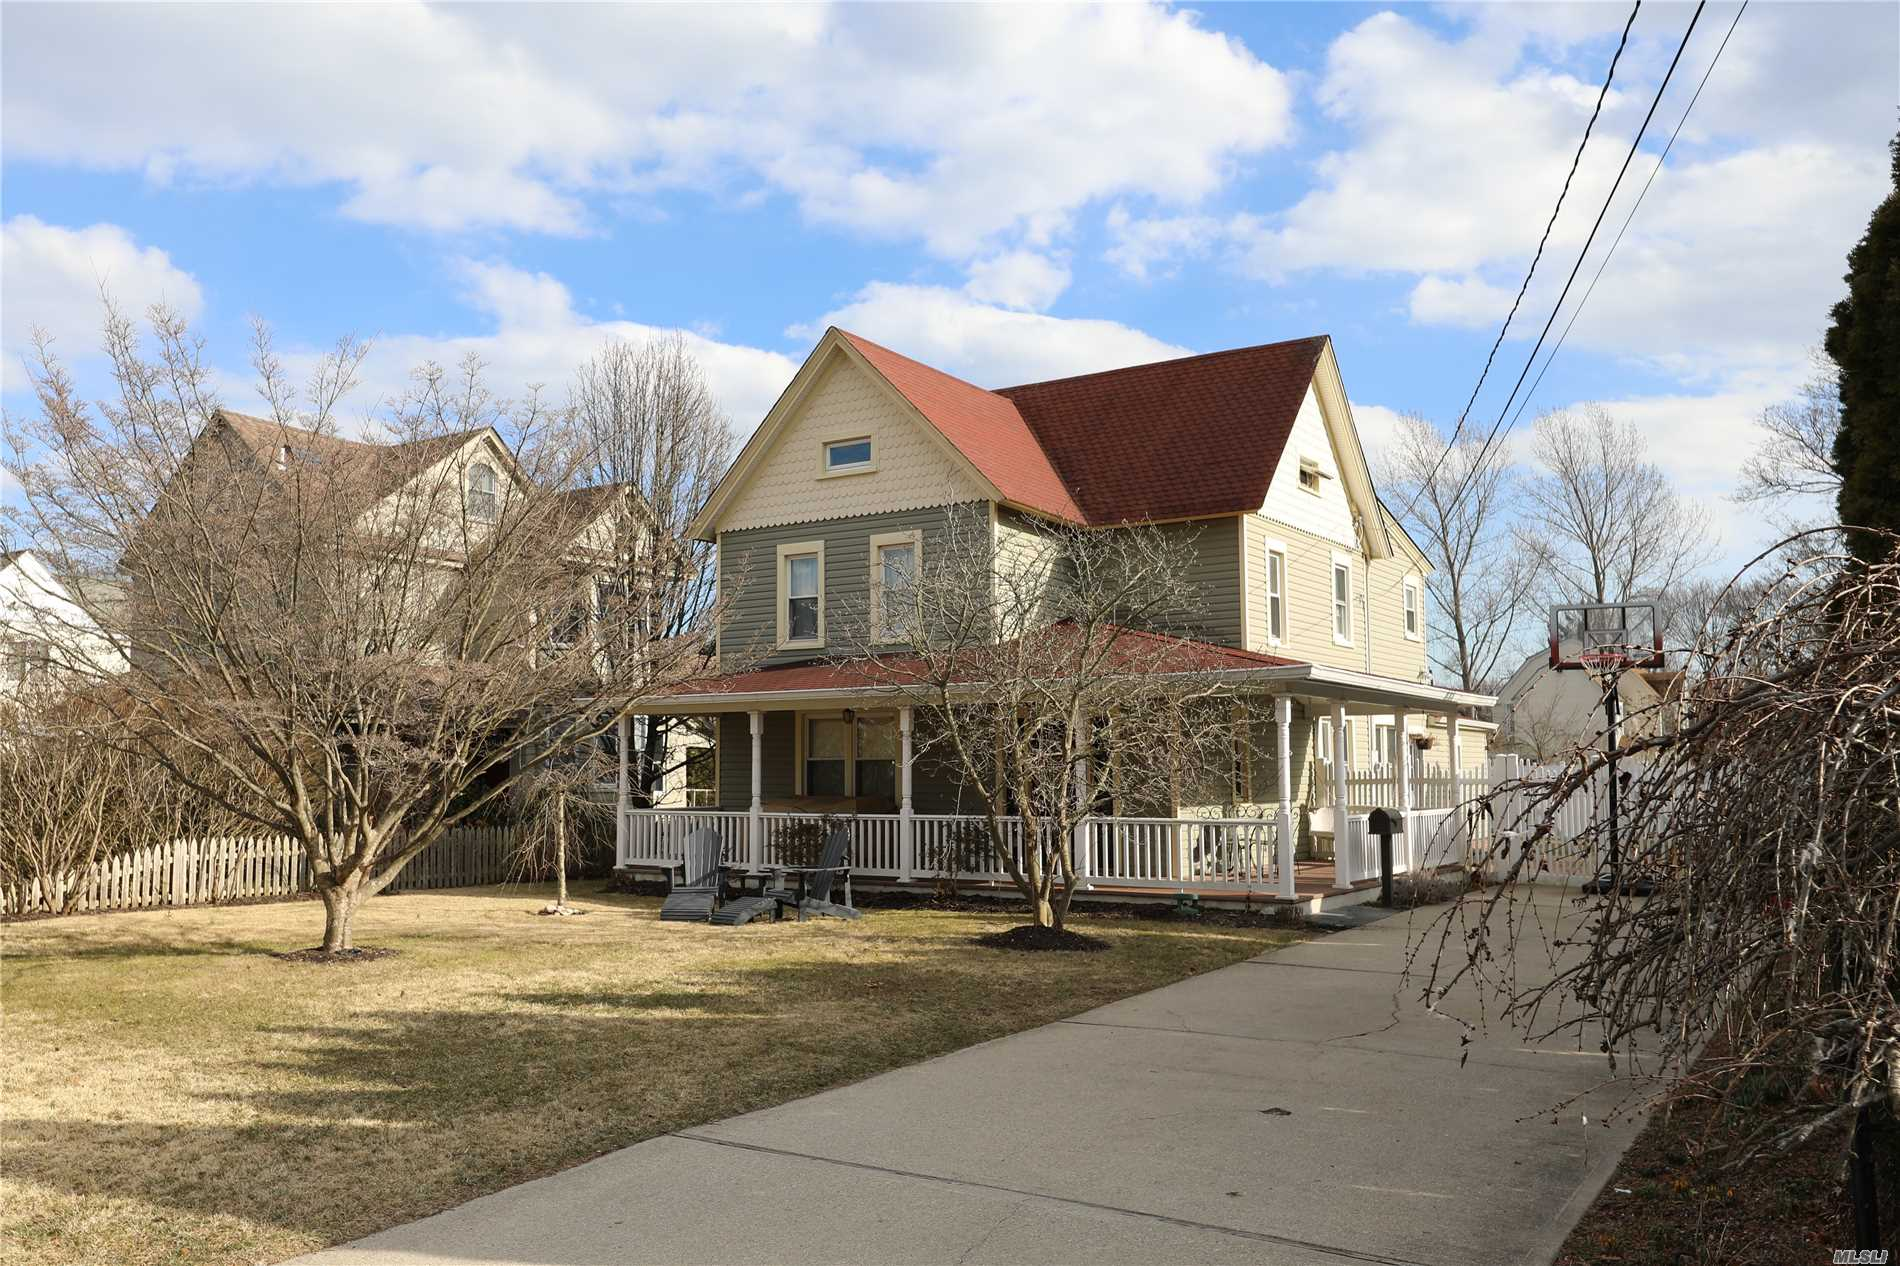 Beautiful South Sayville Locale! Charm Galore Throughout This 19th Century Victorian Home Located On Quiet Dead End St. Updates Include, brand new SS applicances (fridge, oven, dishwasher, microwave) Roof, Heating System, Electric, Windows, Front Porch, Kitchen, Septic, Fence And More. Eat-In- Kitchen W/ Island Is The Gathering Place Of The Home Opens To Family Rm W/ Sliders To Paver Patio and 18x36 Heated In-ground Pool. Pristine Master Bath & Guest Baths. Don't Miss!